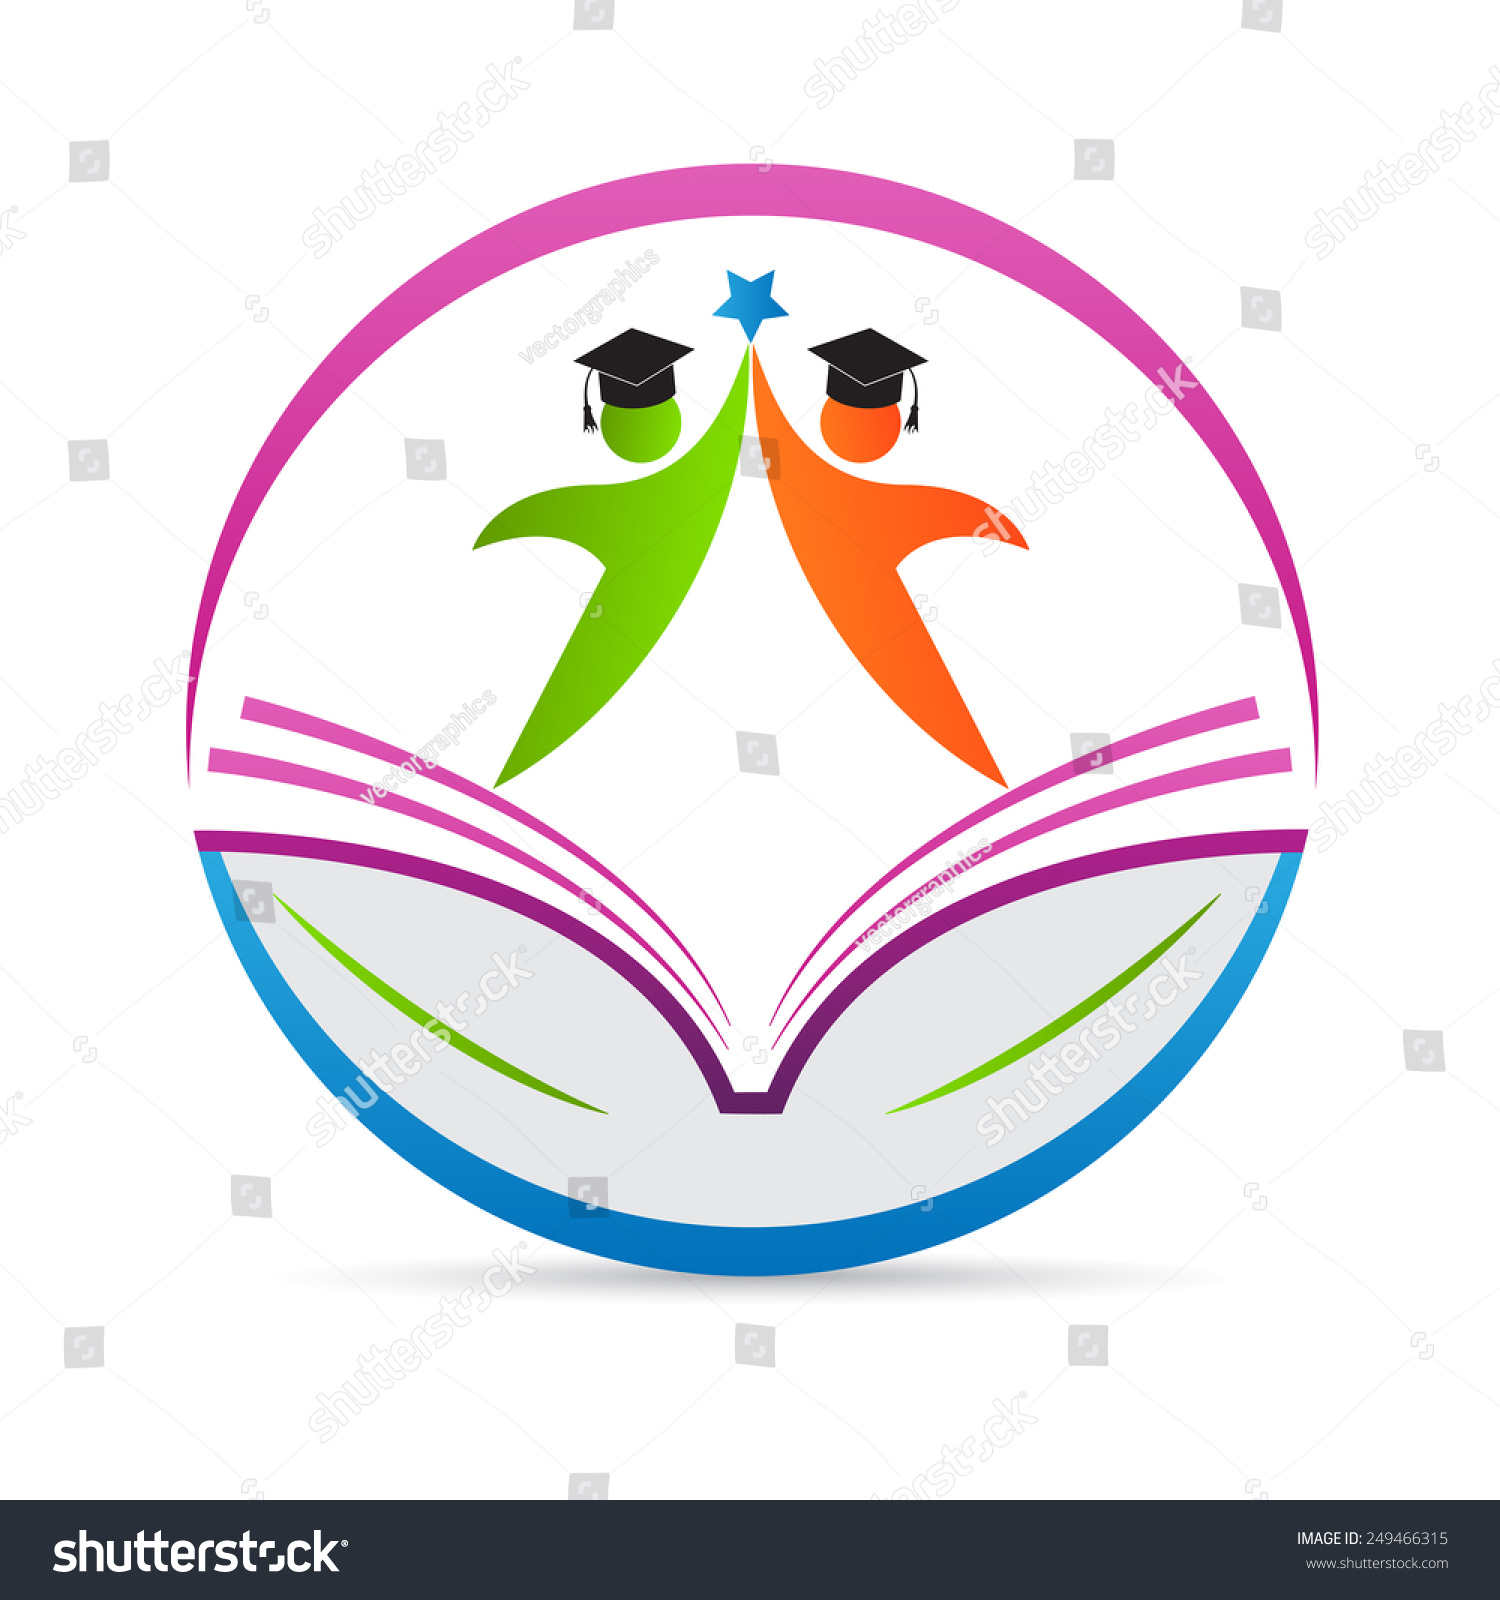 Royalty free education logo vector design represents for Painting and decorating logo ideas